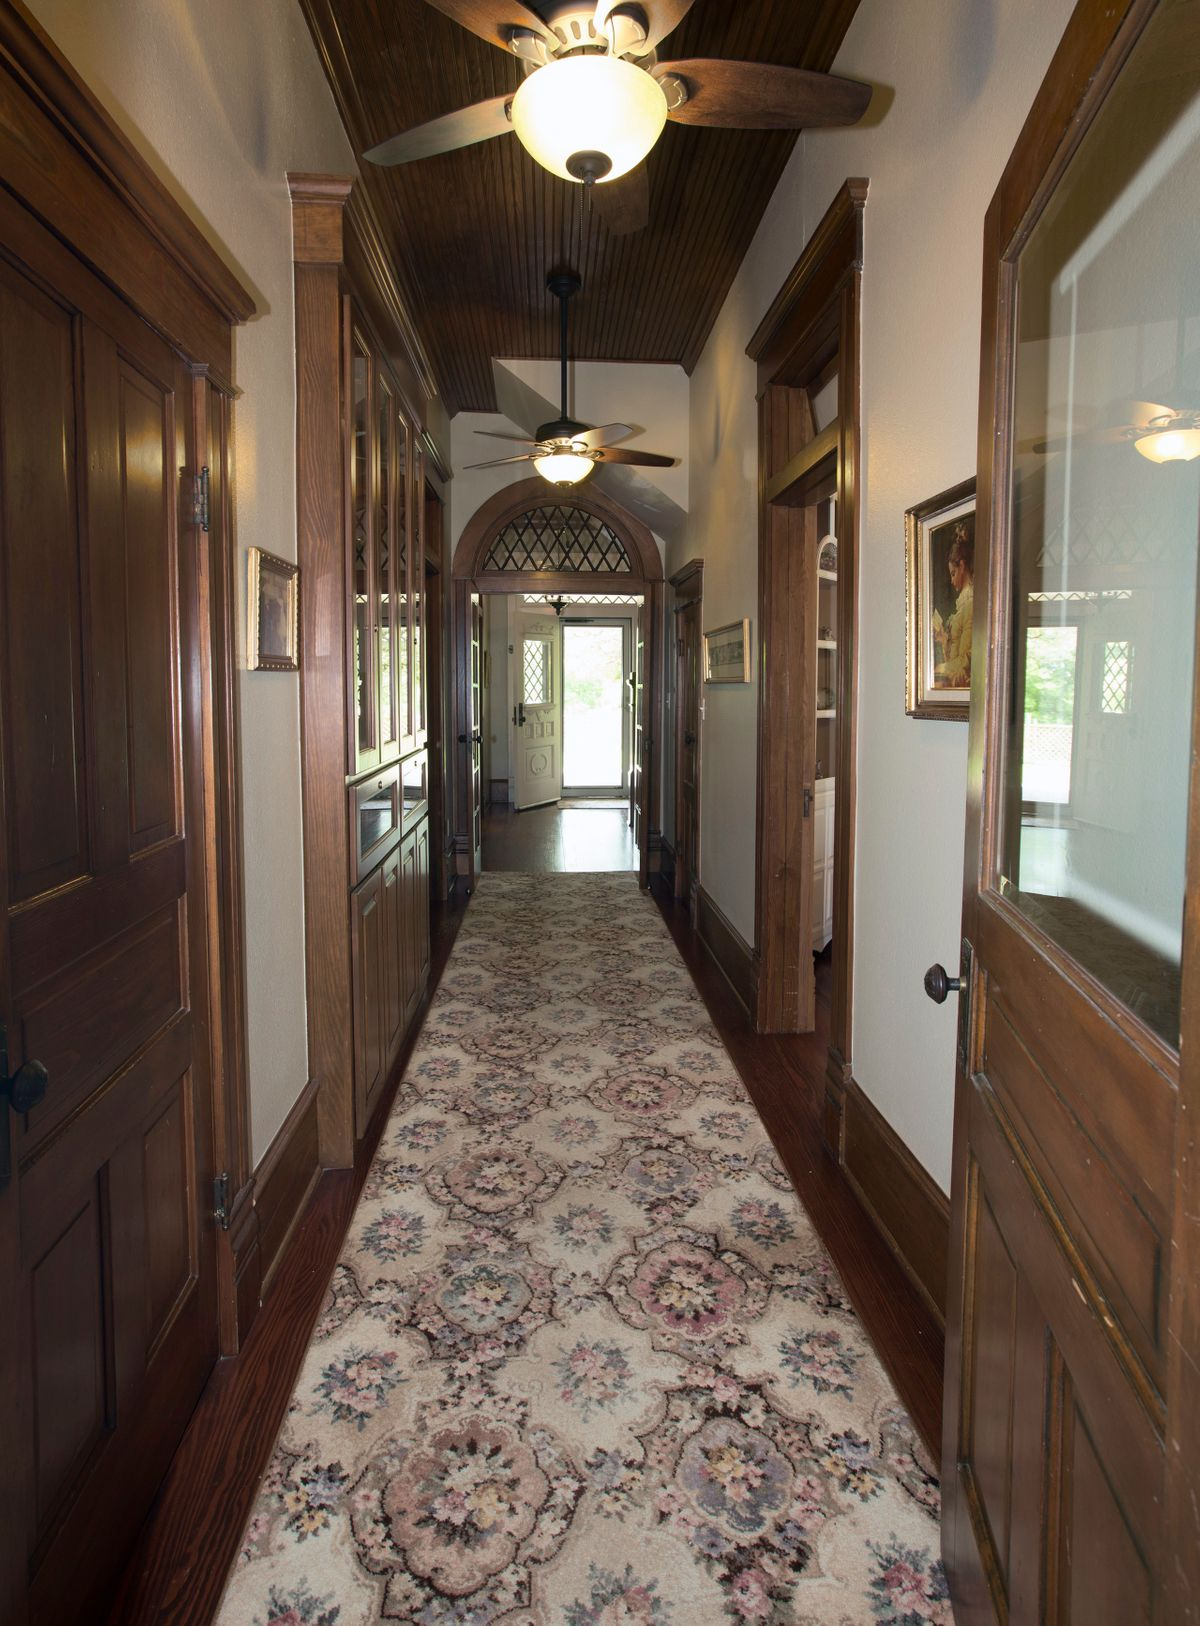 Sanders Hitch Traditional Home Photo Video Shoot Location Interior Rooms 18.jpg